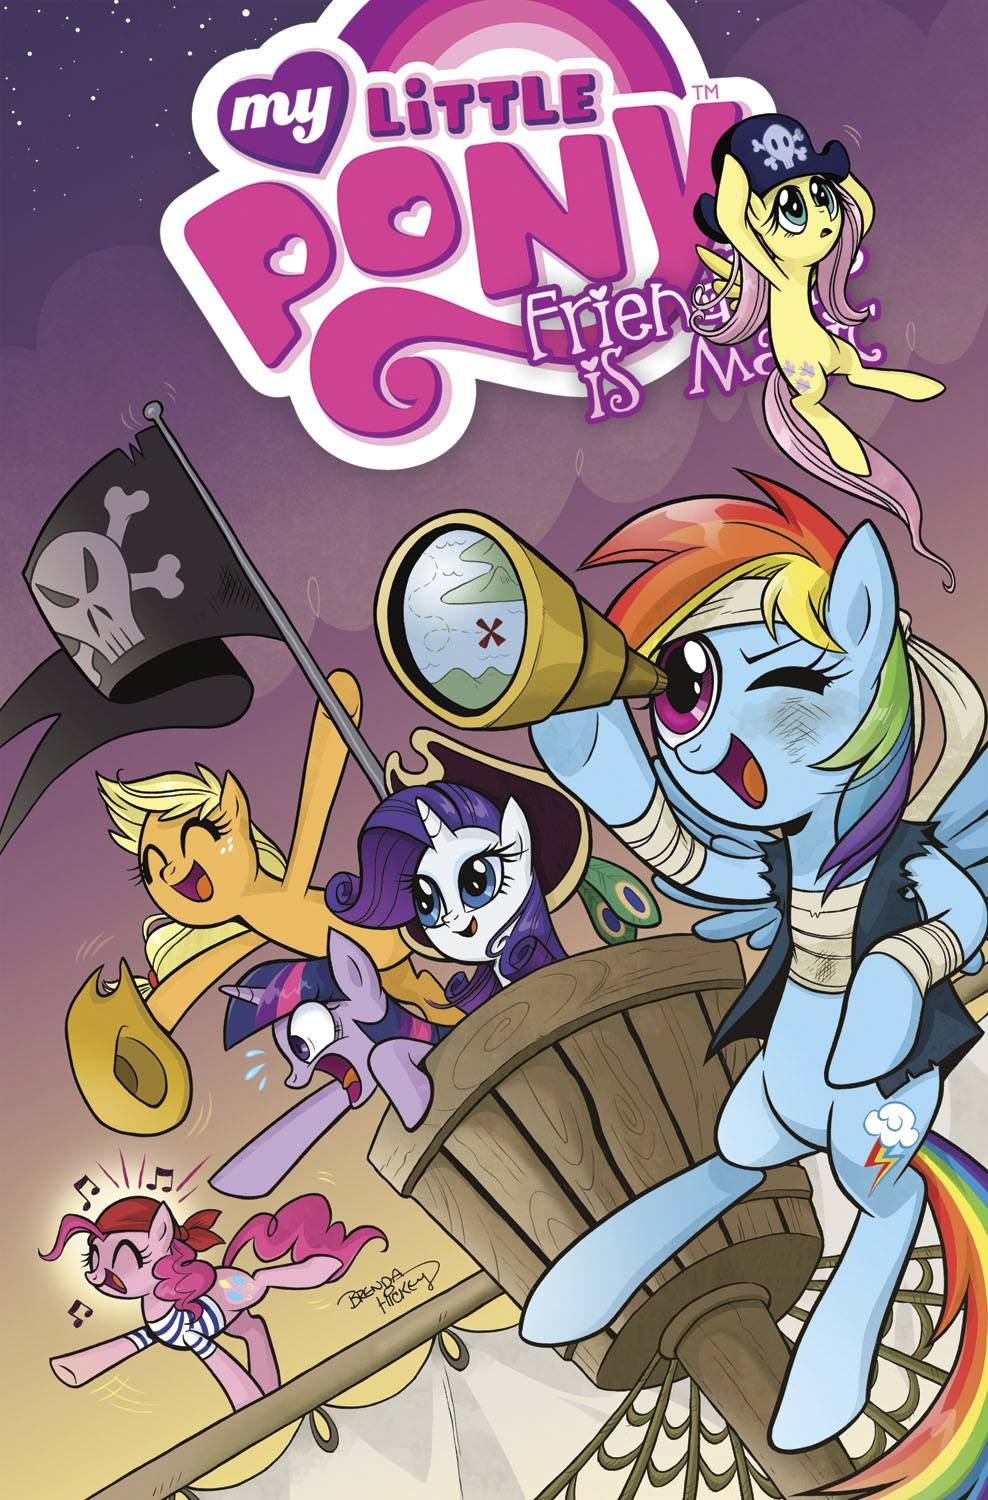 MY LITTLE PONY: FRIENDSHIP IS MAGIC VOL 04